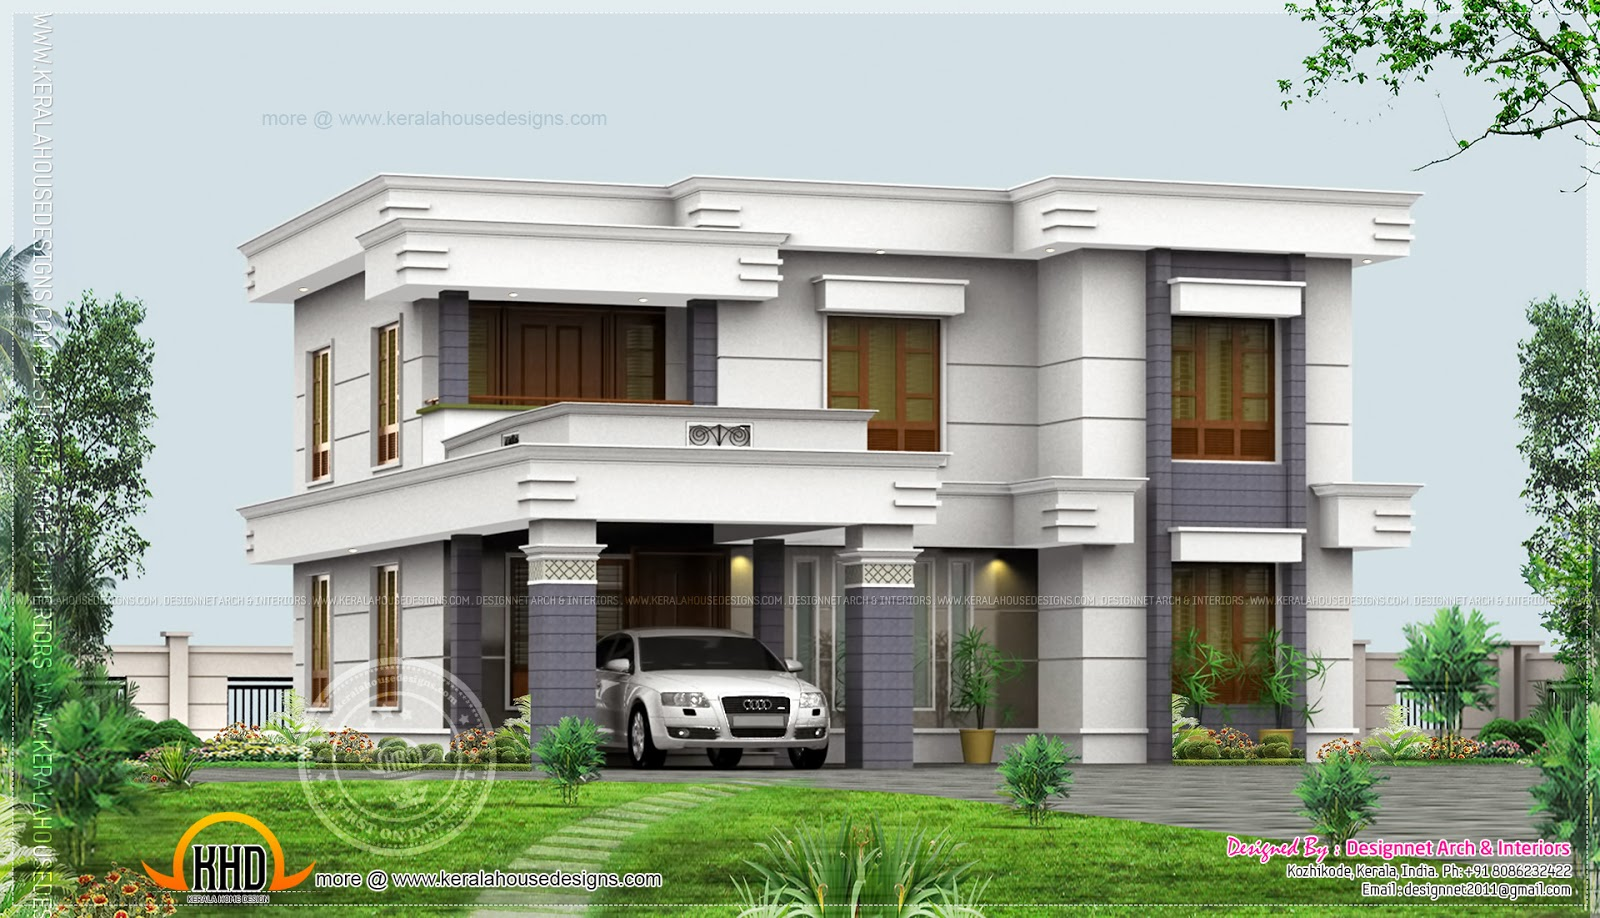 4 bedroom flat roof design in 2500 kerala home 2500 sq ft house plans indian style